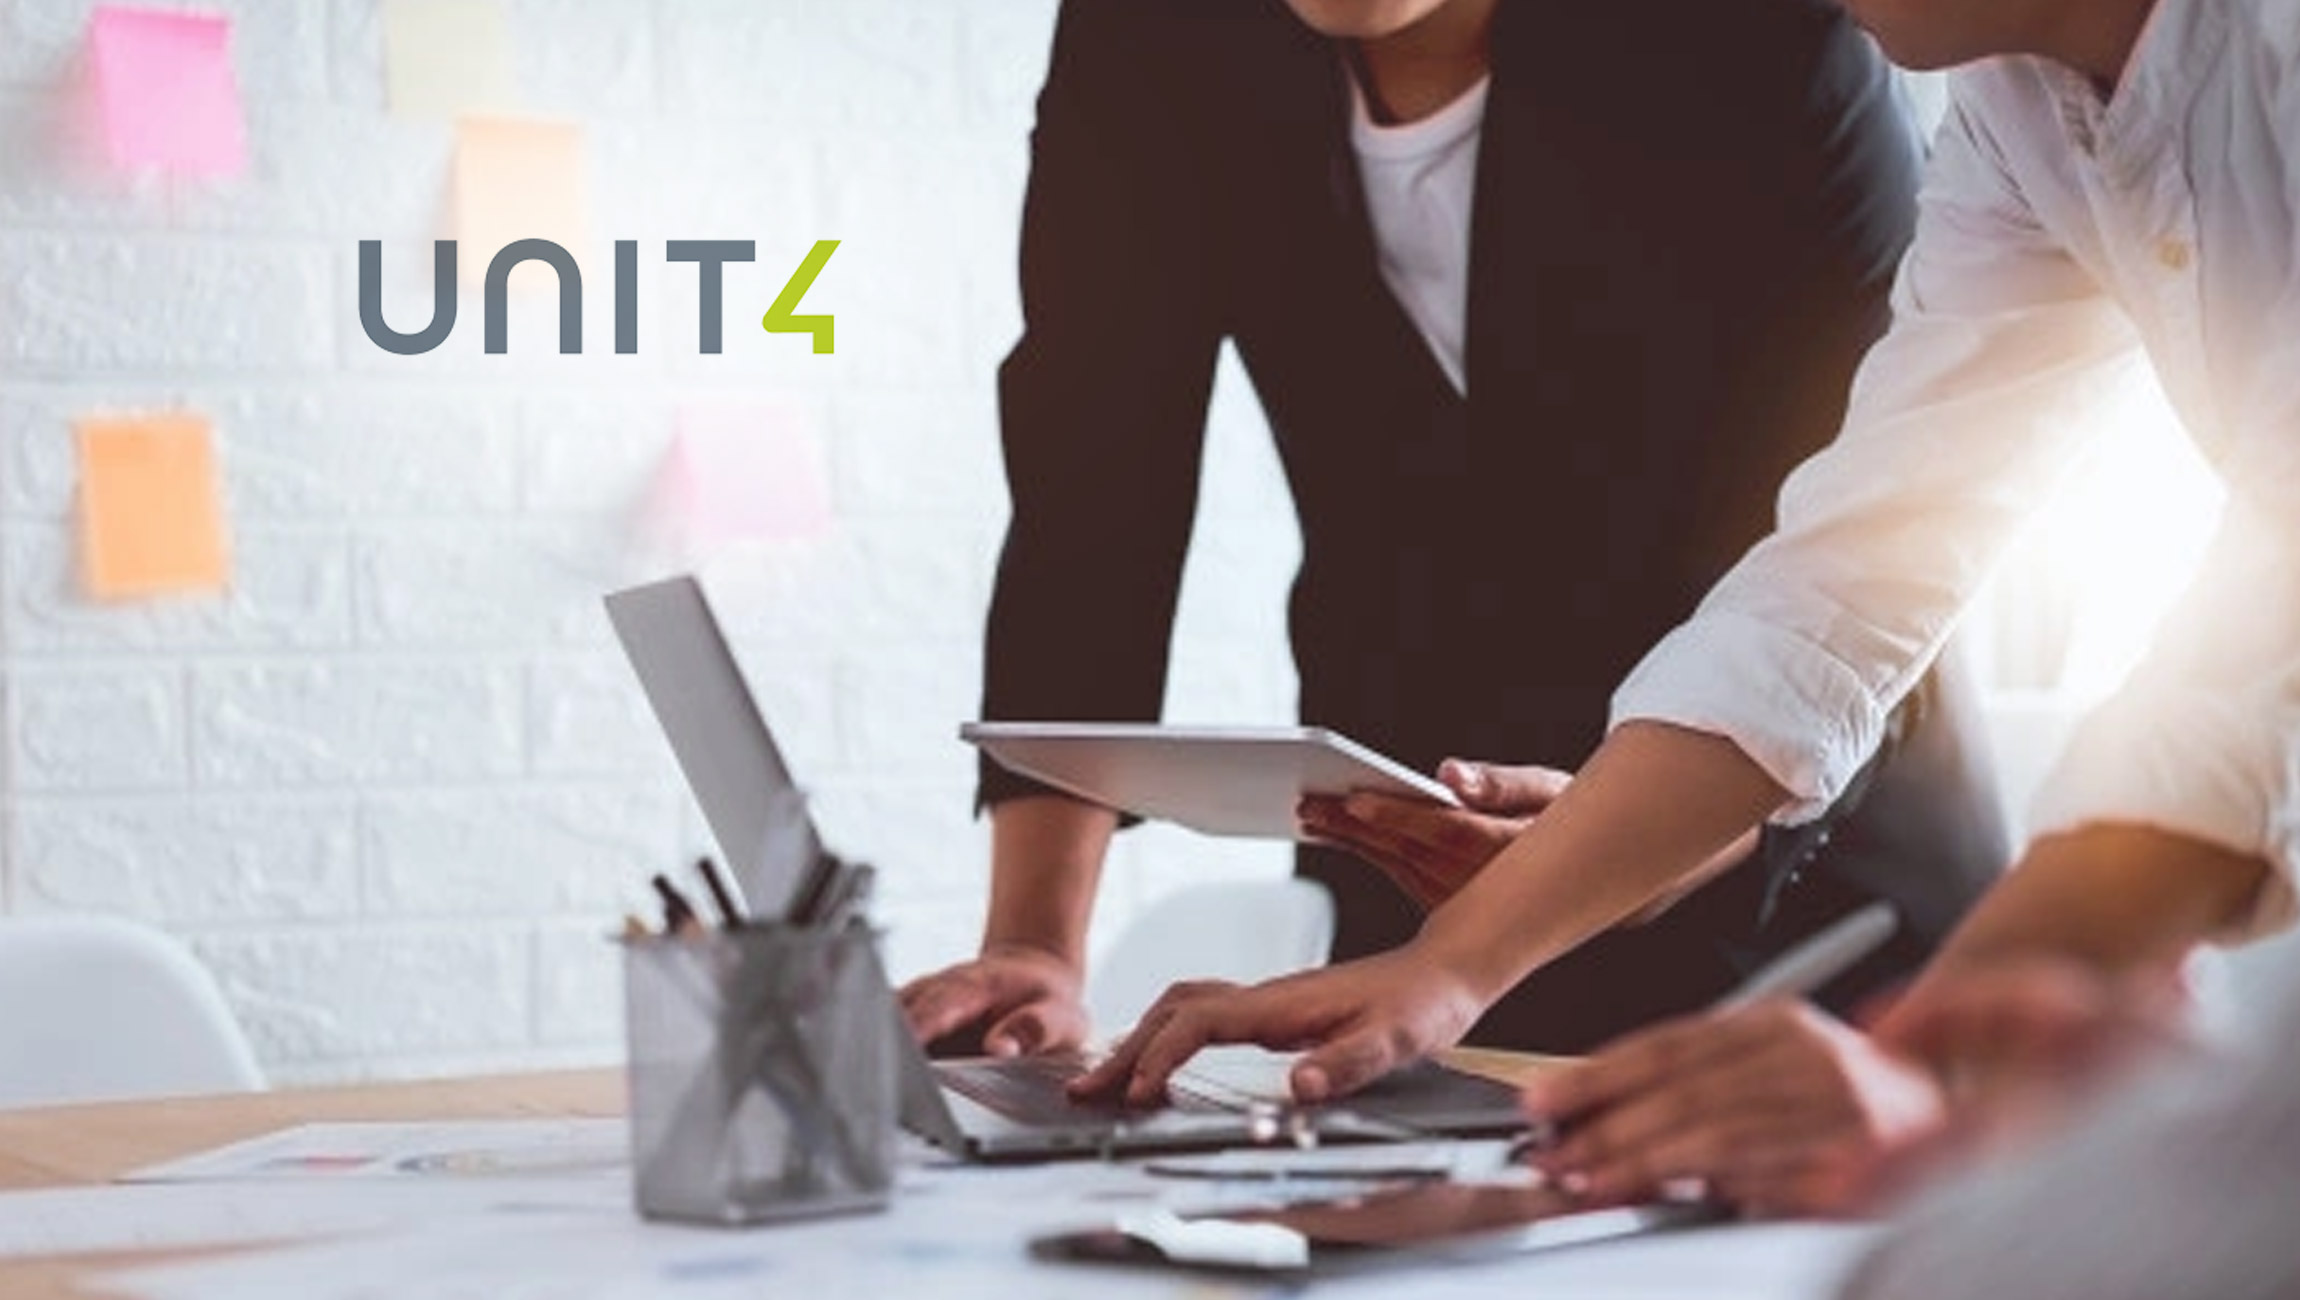 Unit4-Cloud-ERP-Platform-Selected-to-Deliver-Operational-Transformation-for-Public-School-Districts-in-Canada